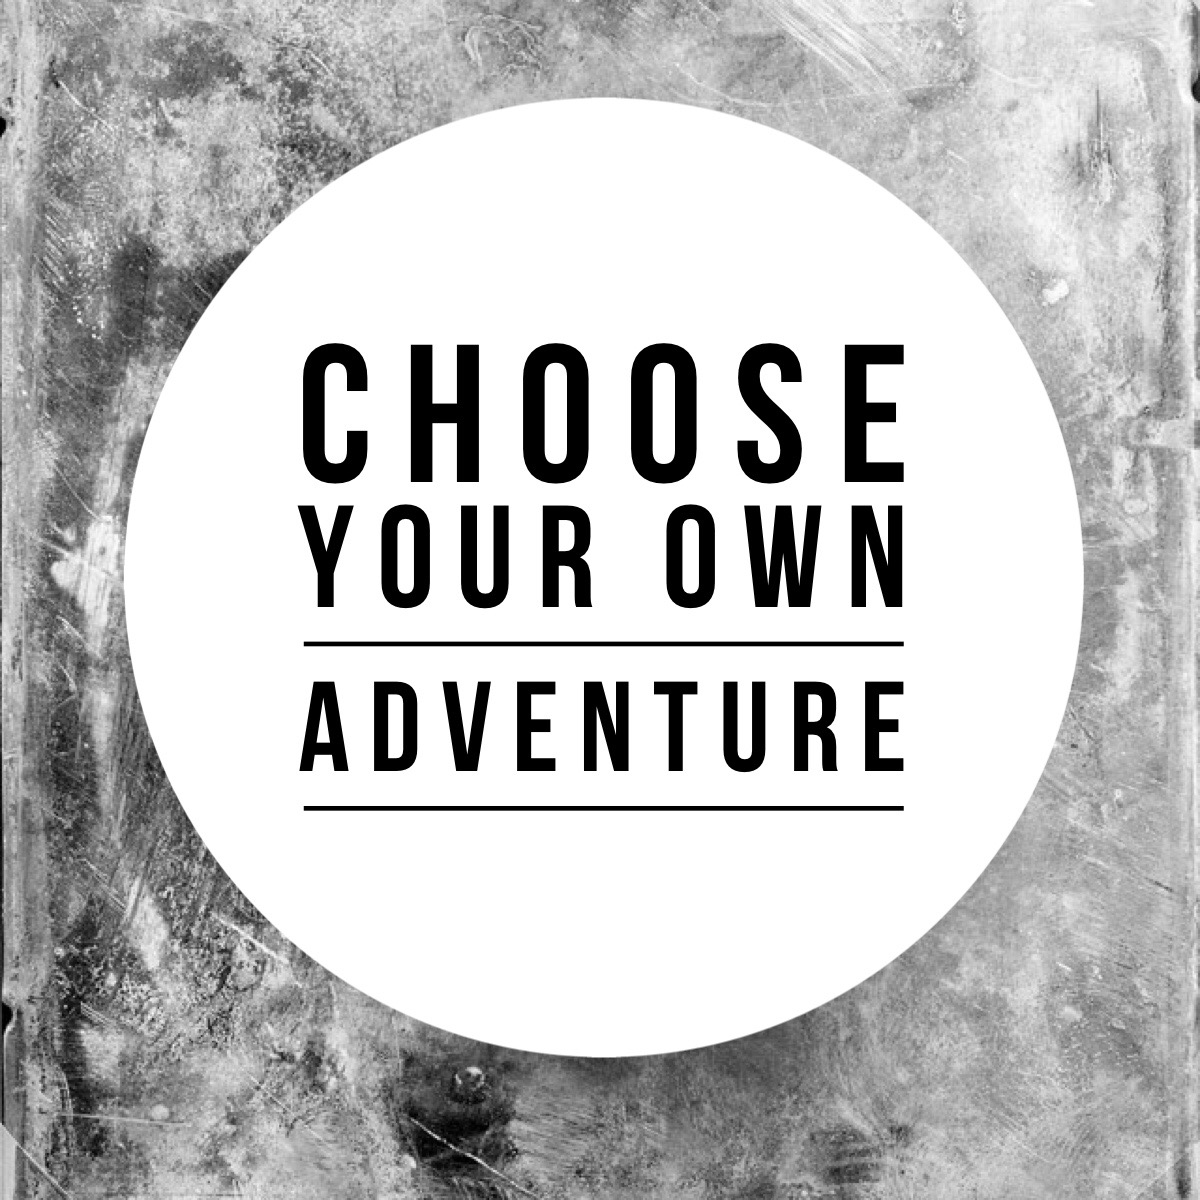 choose your own adventure experience gifts to give this season